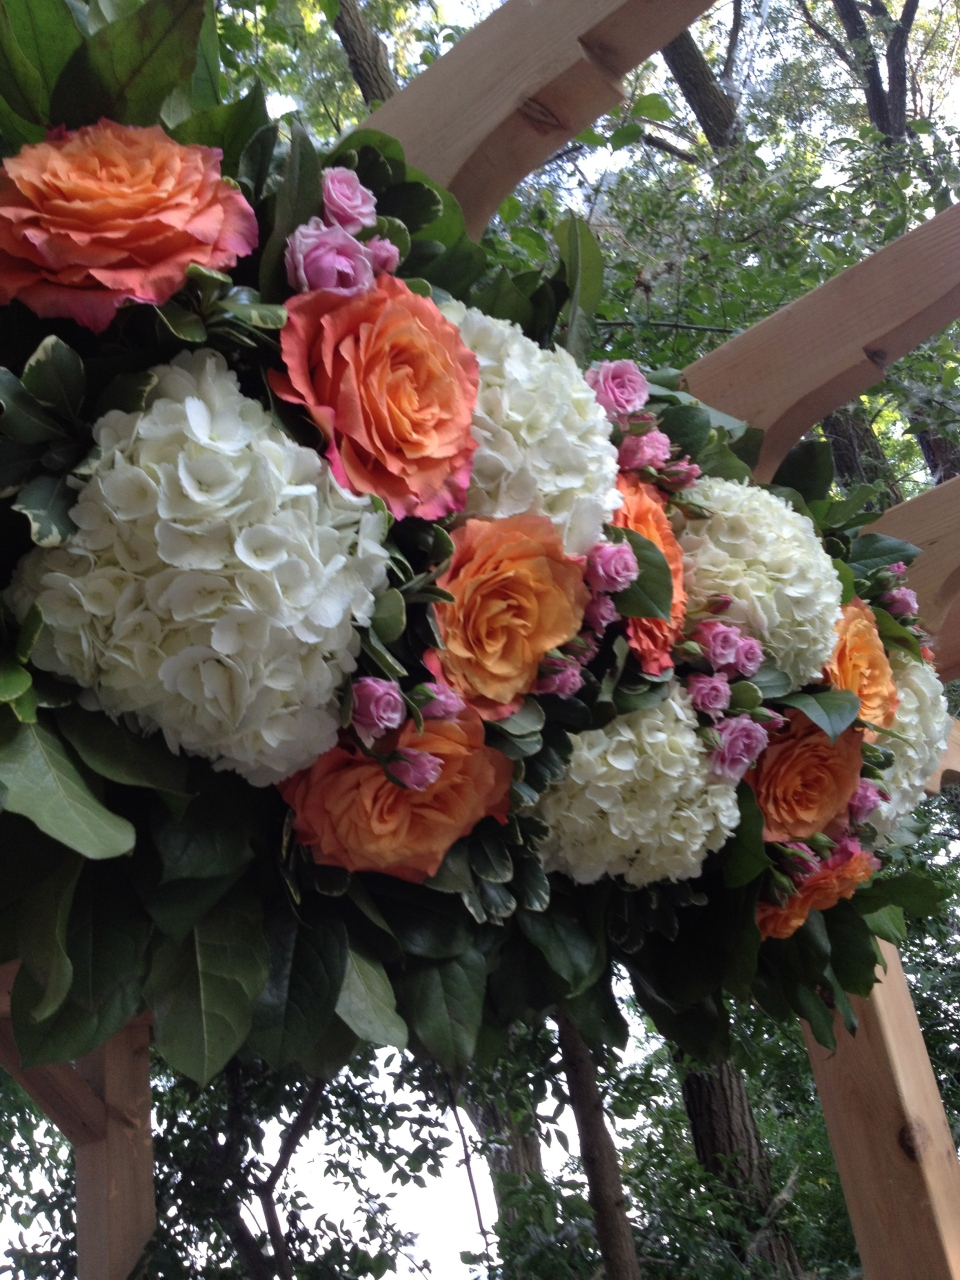 Trellis arrangement of hydrangea, cabbage roses and spray roses in corals and pinks